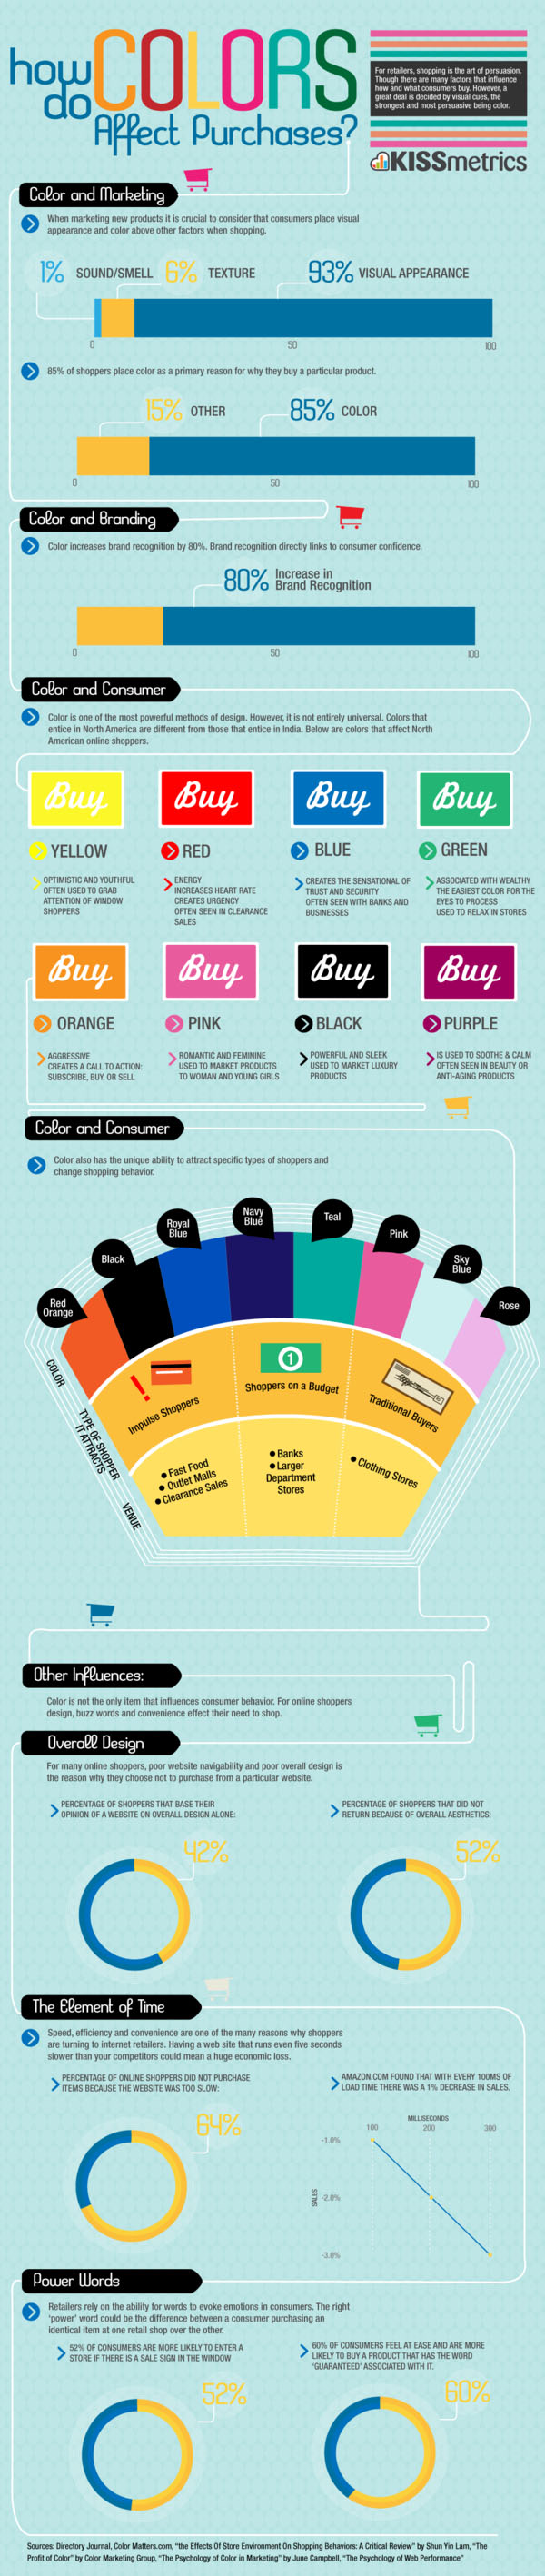 How-Colors-Affect-Purchase-Decisions-Infographic